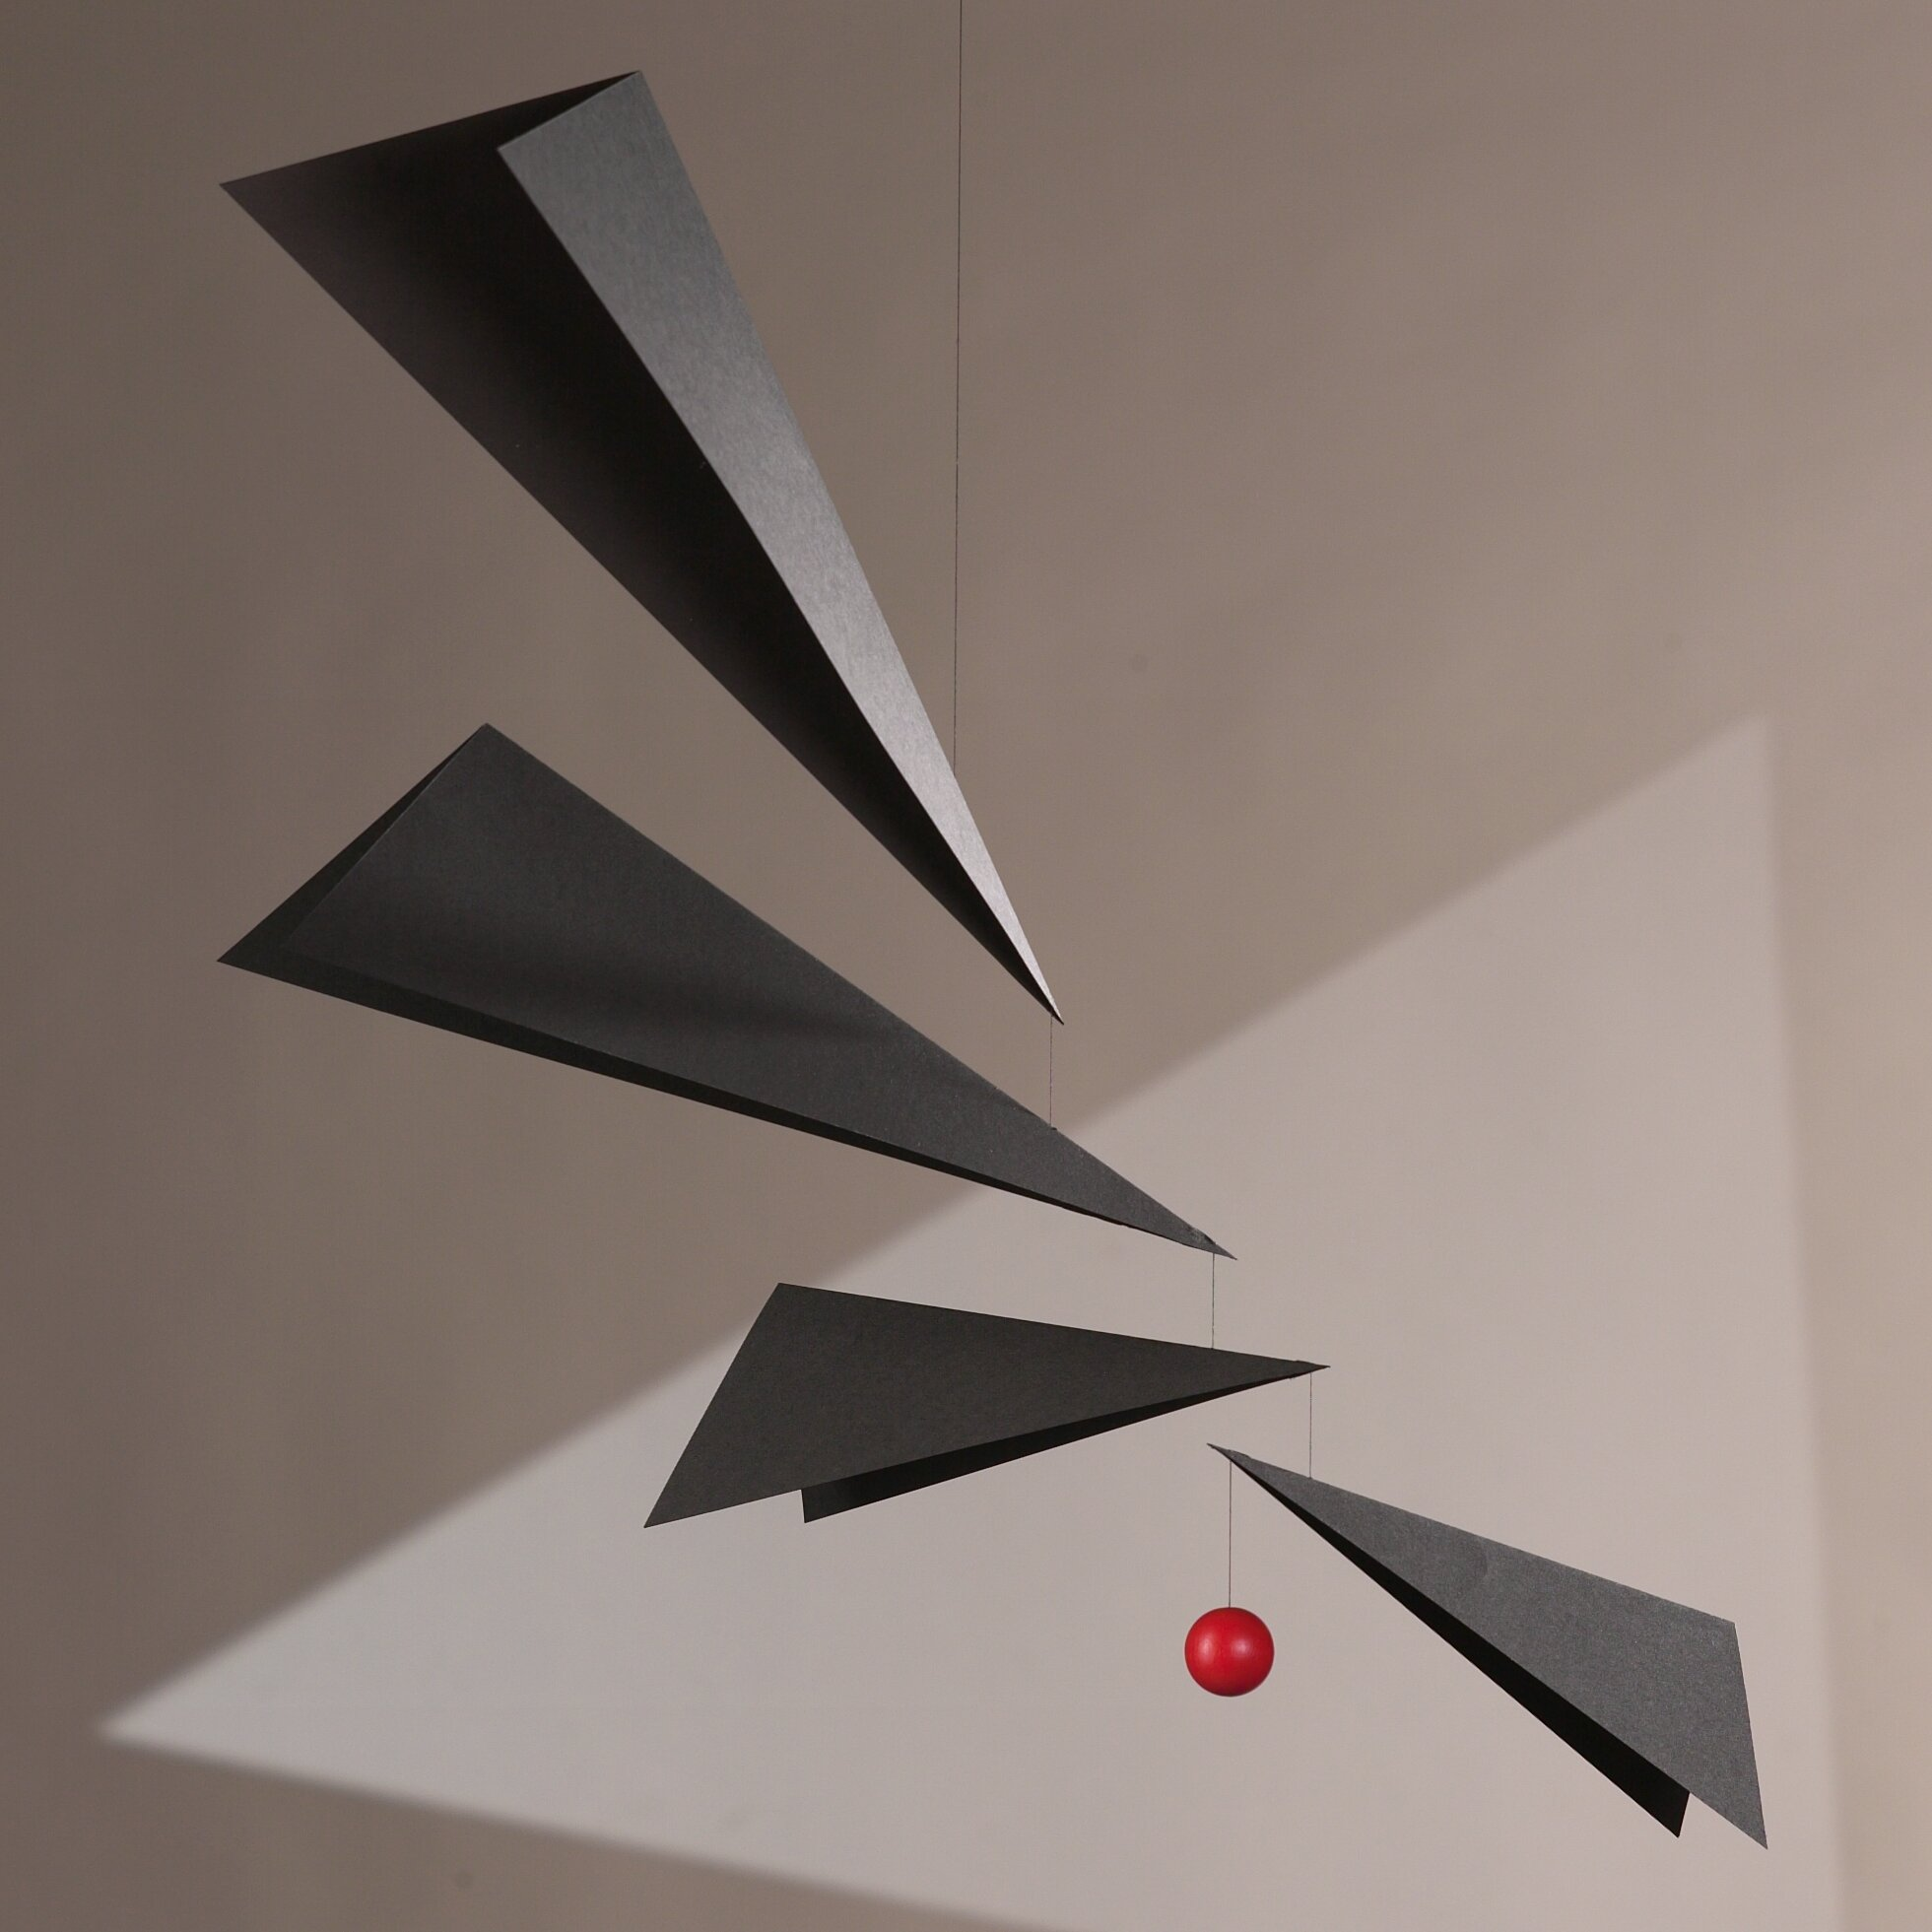 Flensted mobiles abstract wings mobile reviews wayfair - Flensted mobiles ...